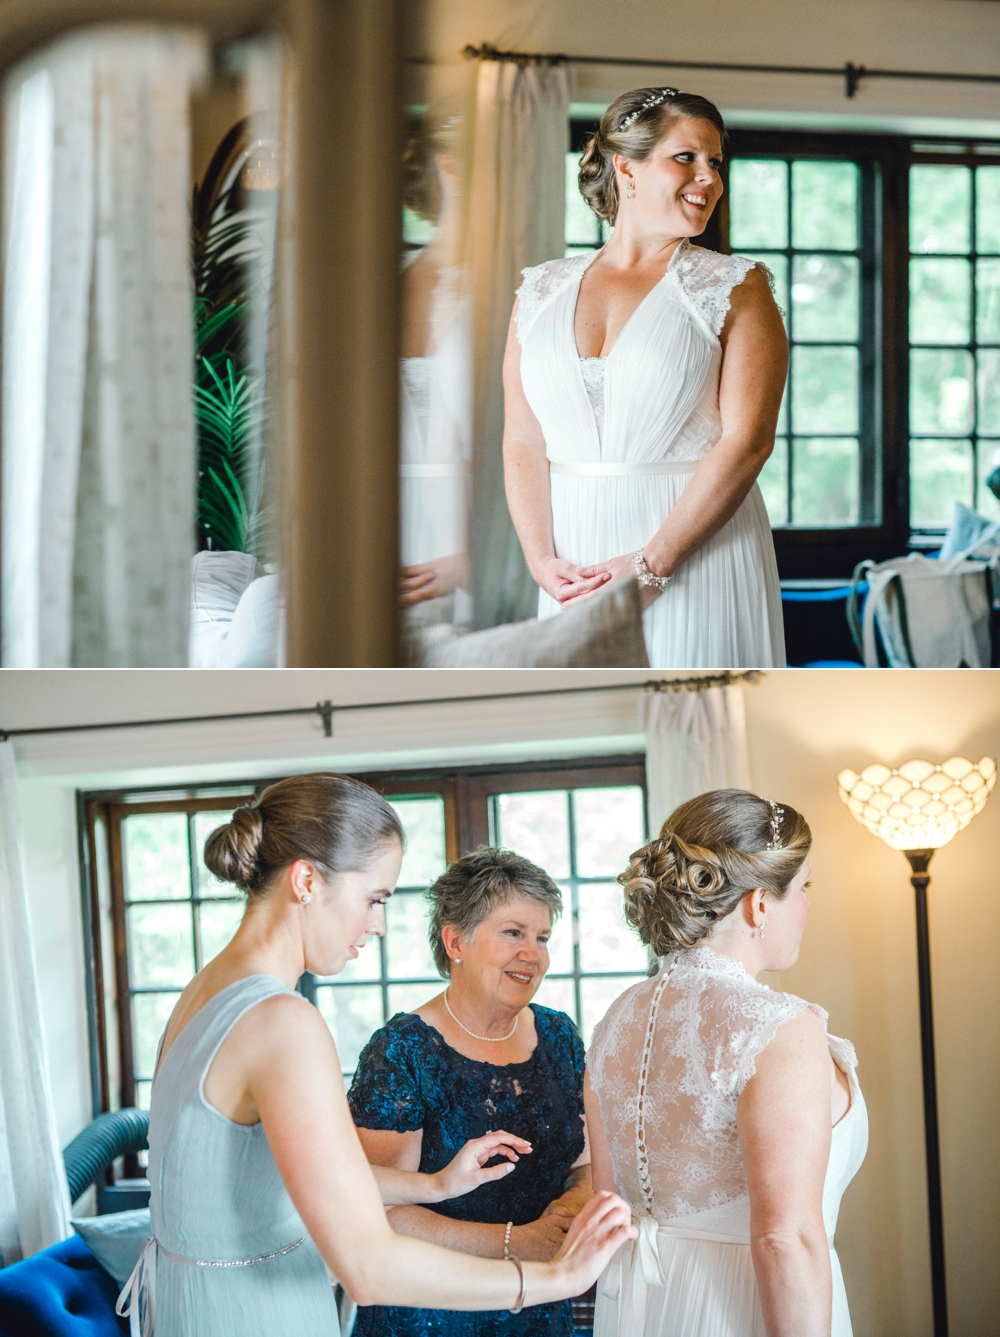 SomerbyJonesPhotography__Willowdale_WillowdaleWedding_0007.jpg